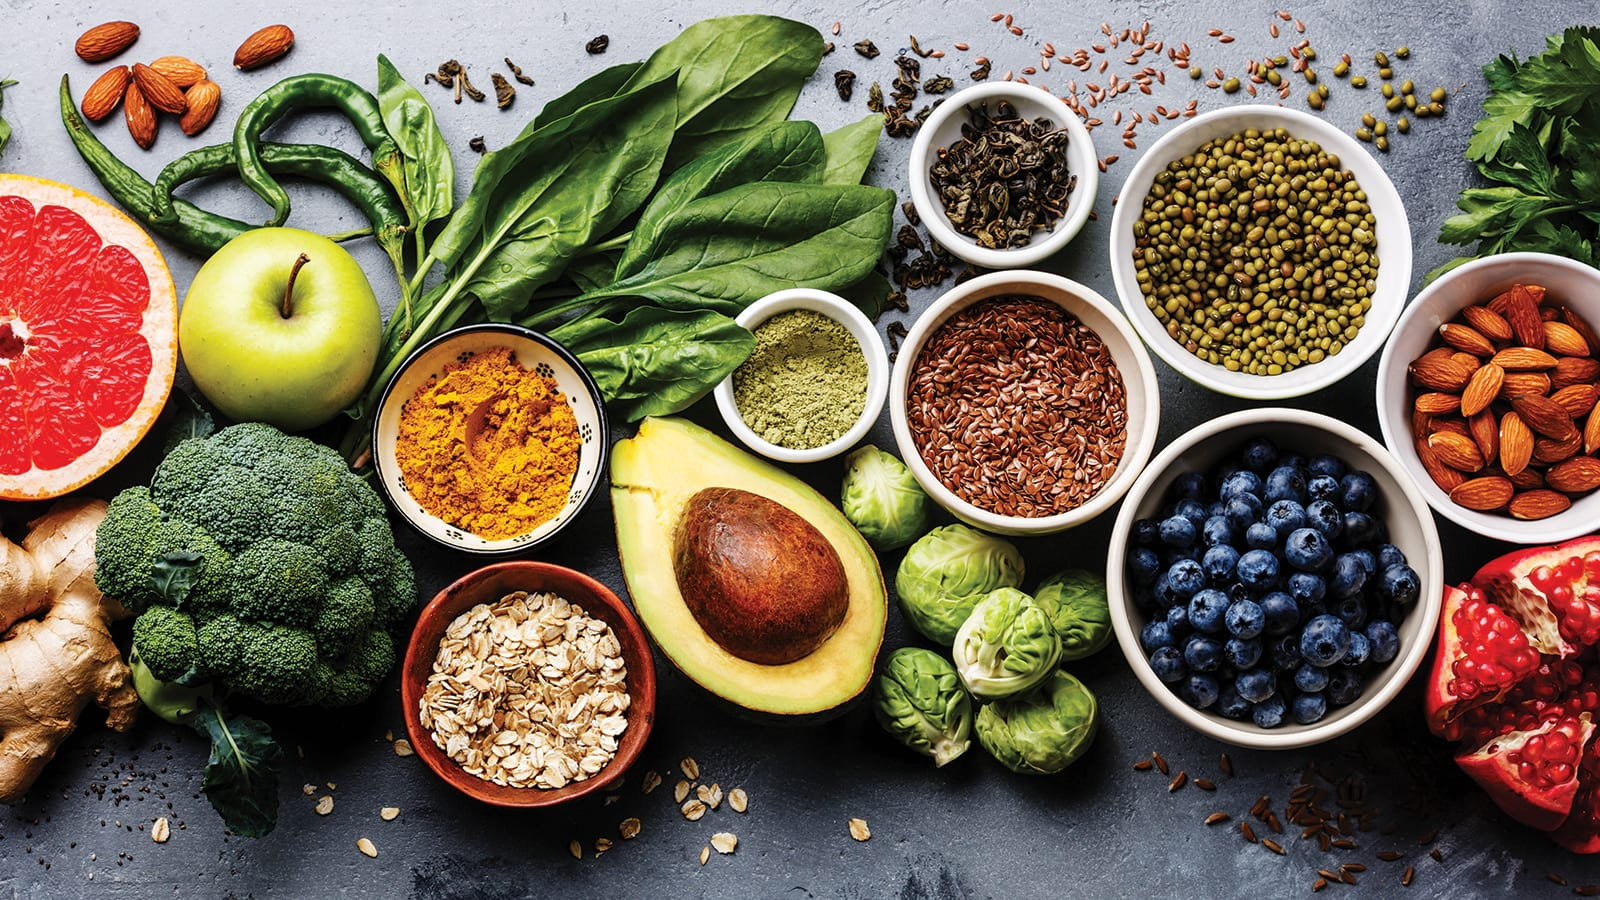 Healthy fruits, vegetables, greens, grains and nuts.